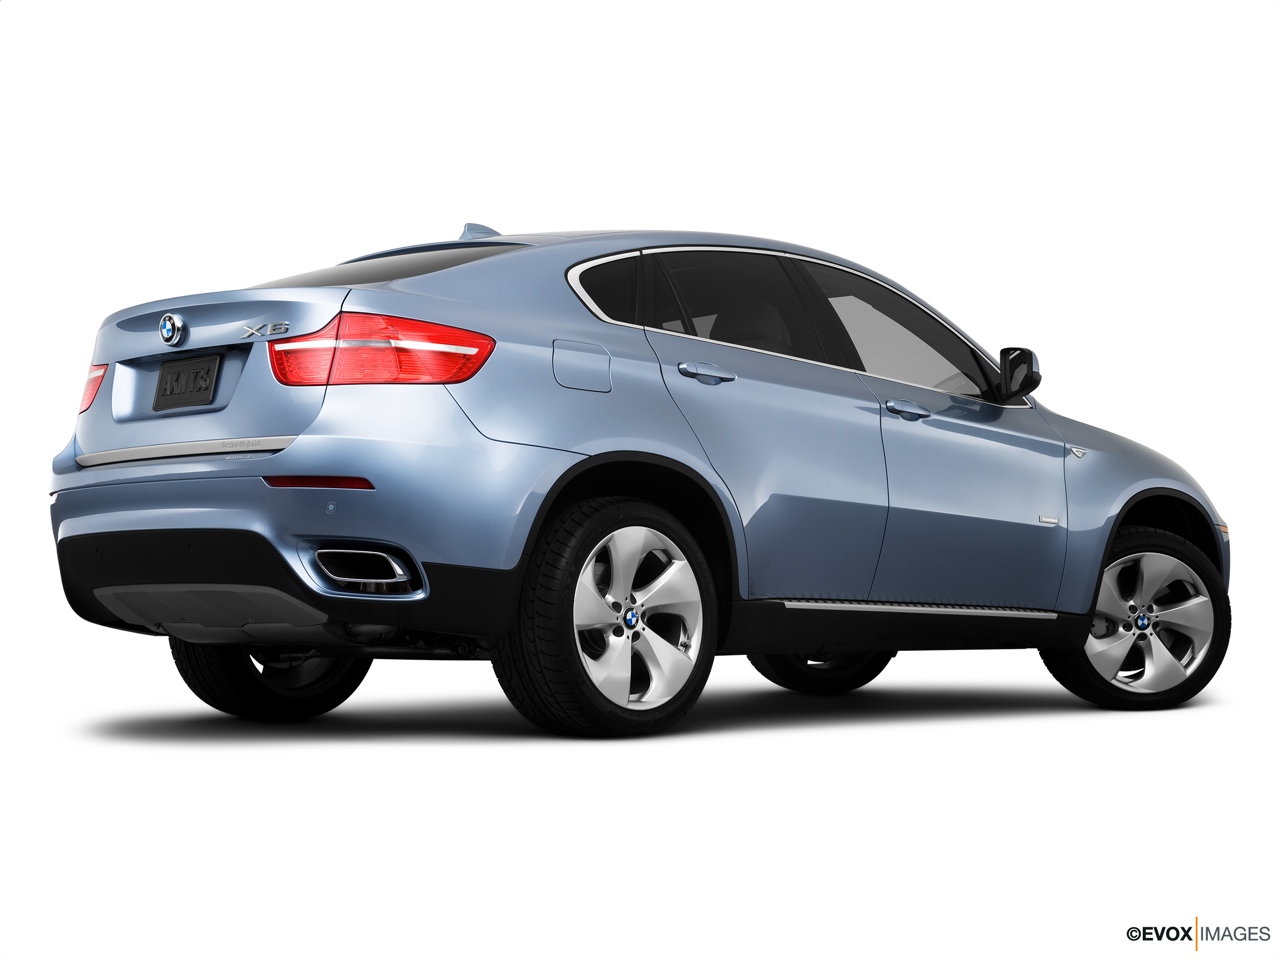 2010 BMW X6 Hybrid Base Low/wide rear 5/8.